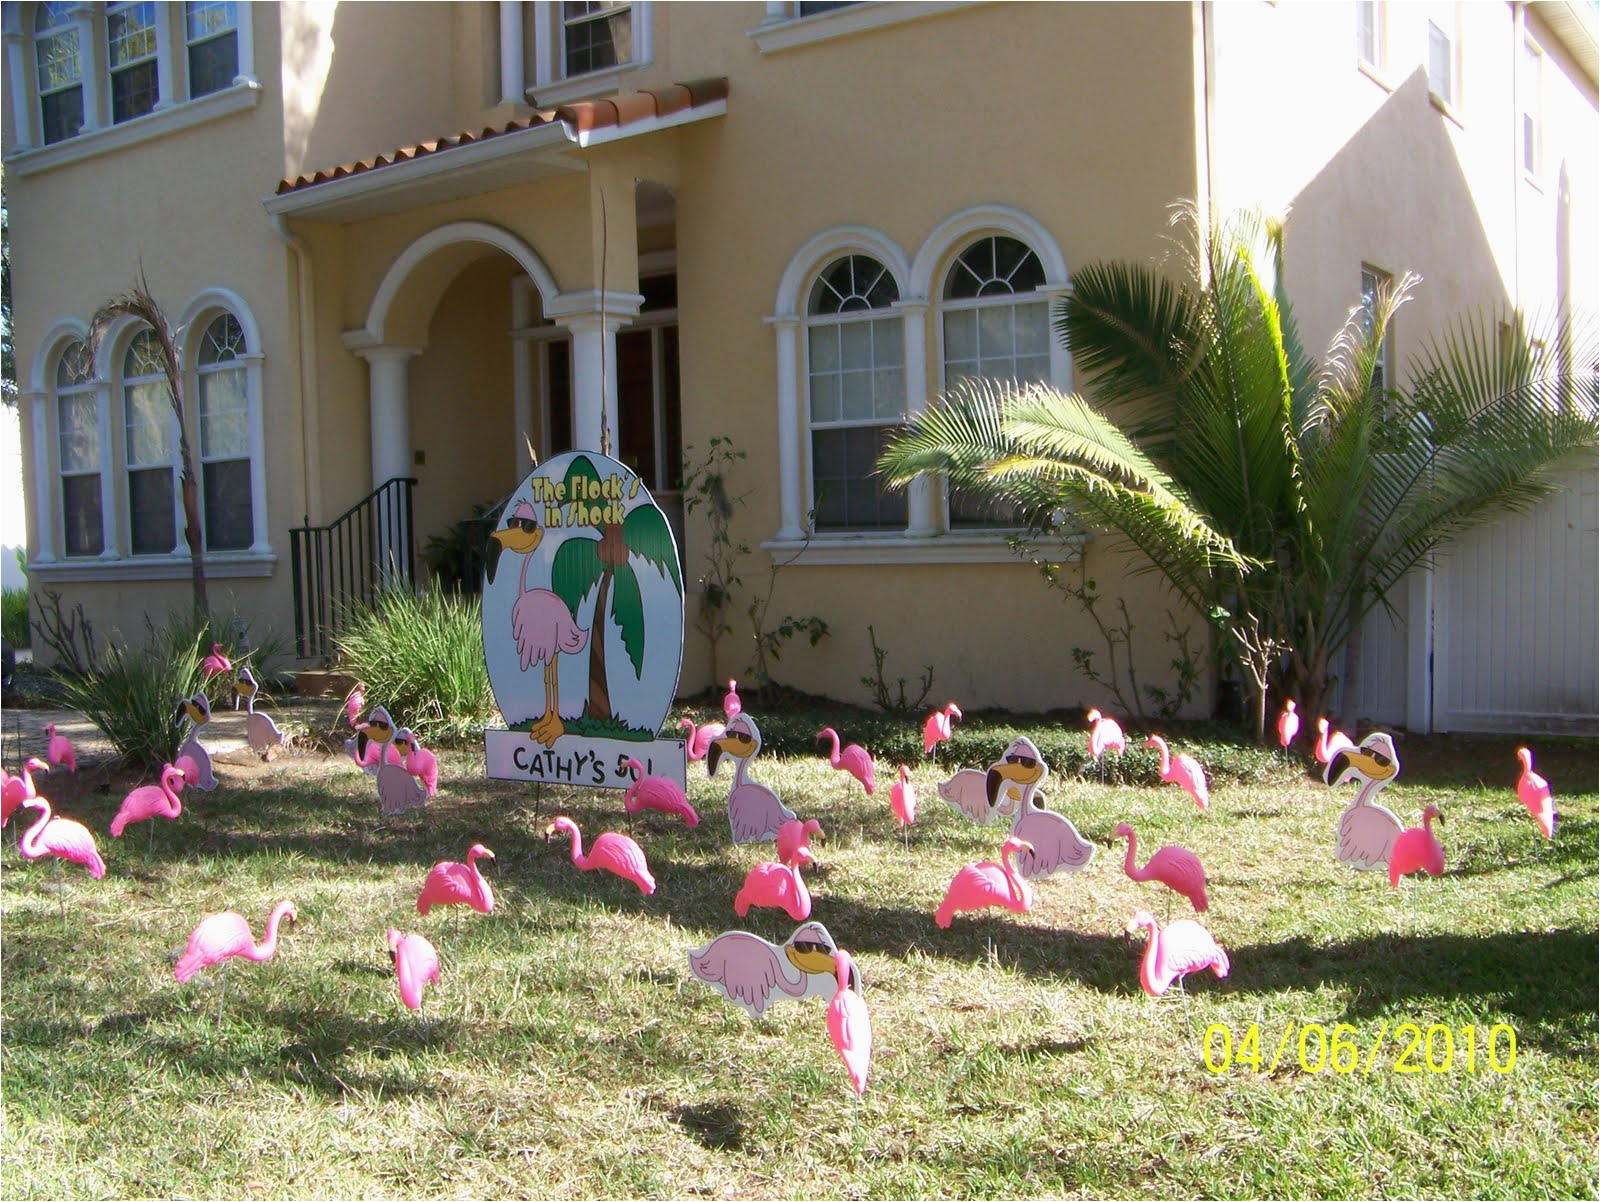 40th Birthday Lawn Decorations Marvelous Yard Decoration Ideas Especially